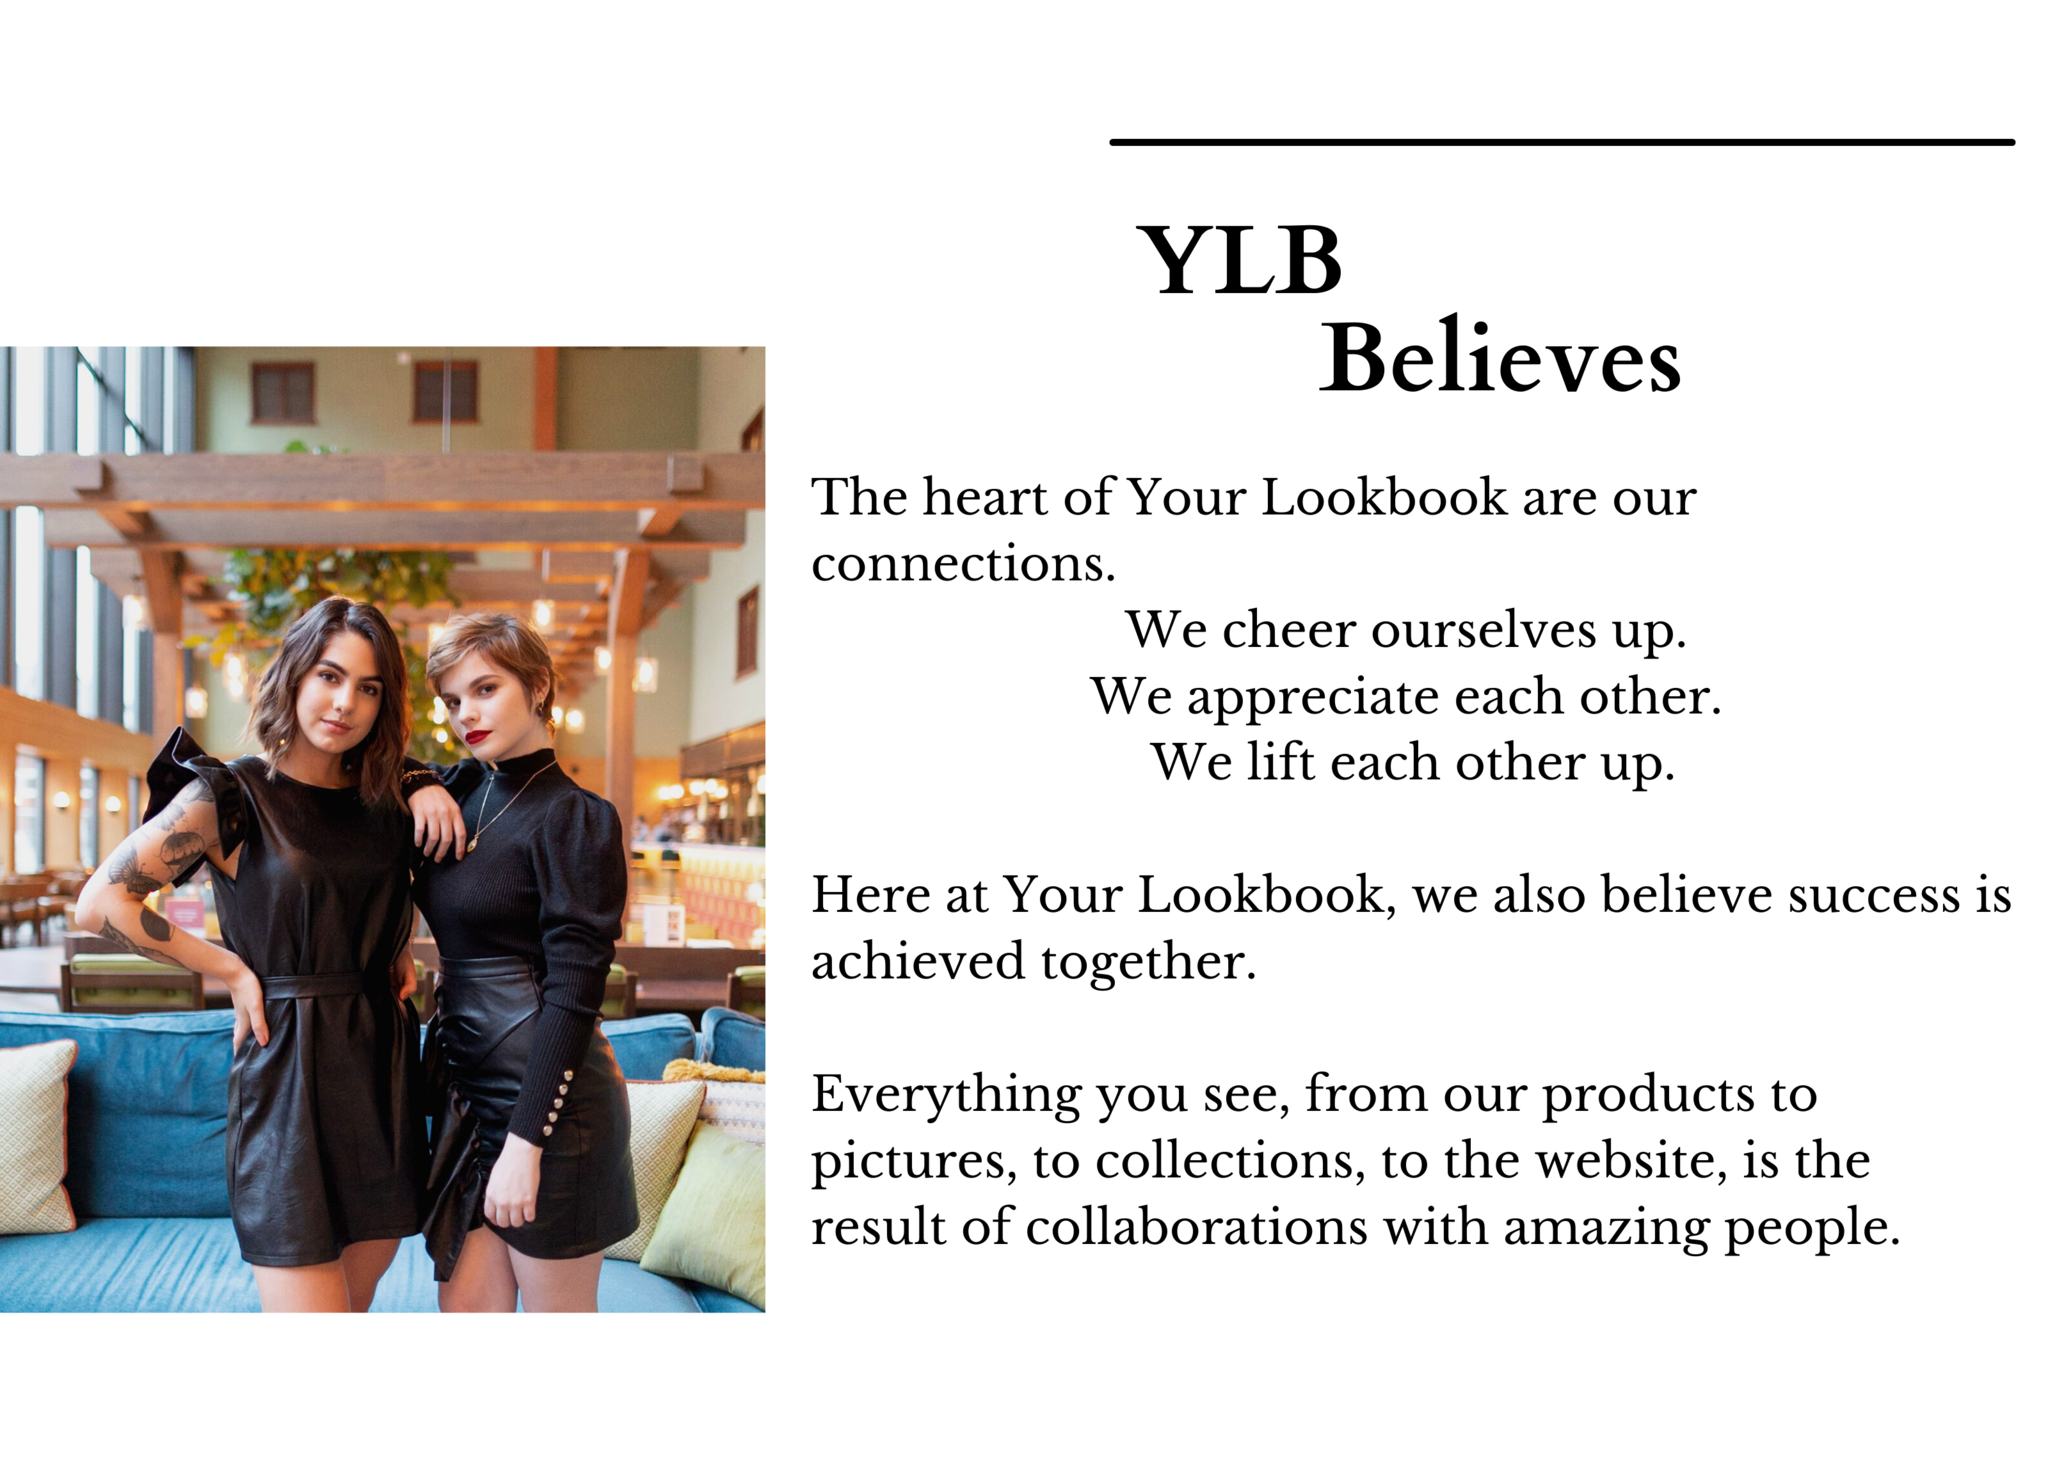 The heart of Your Lookbook are our connections.  We cheer ourselves up.  We appreciate each other.  We lift each other up.  Here at Your Lookbook, we also believe success is achieved together.  Everything you see, from our products to pictures, to collections, to the website, is the result of collaborations with amazing people.